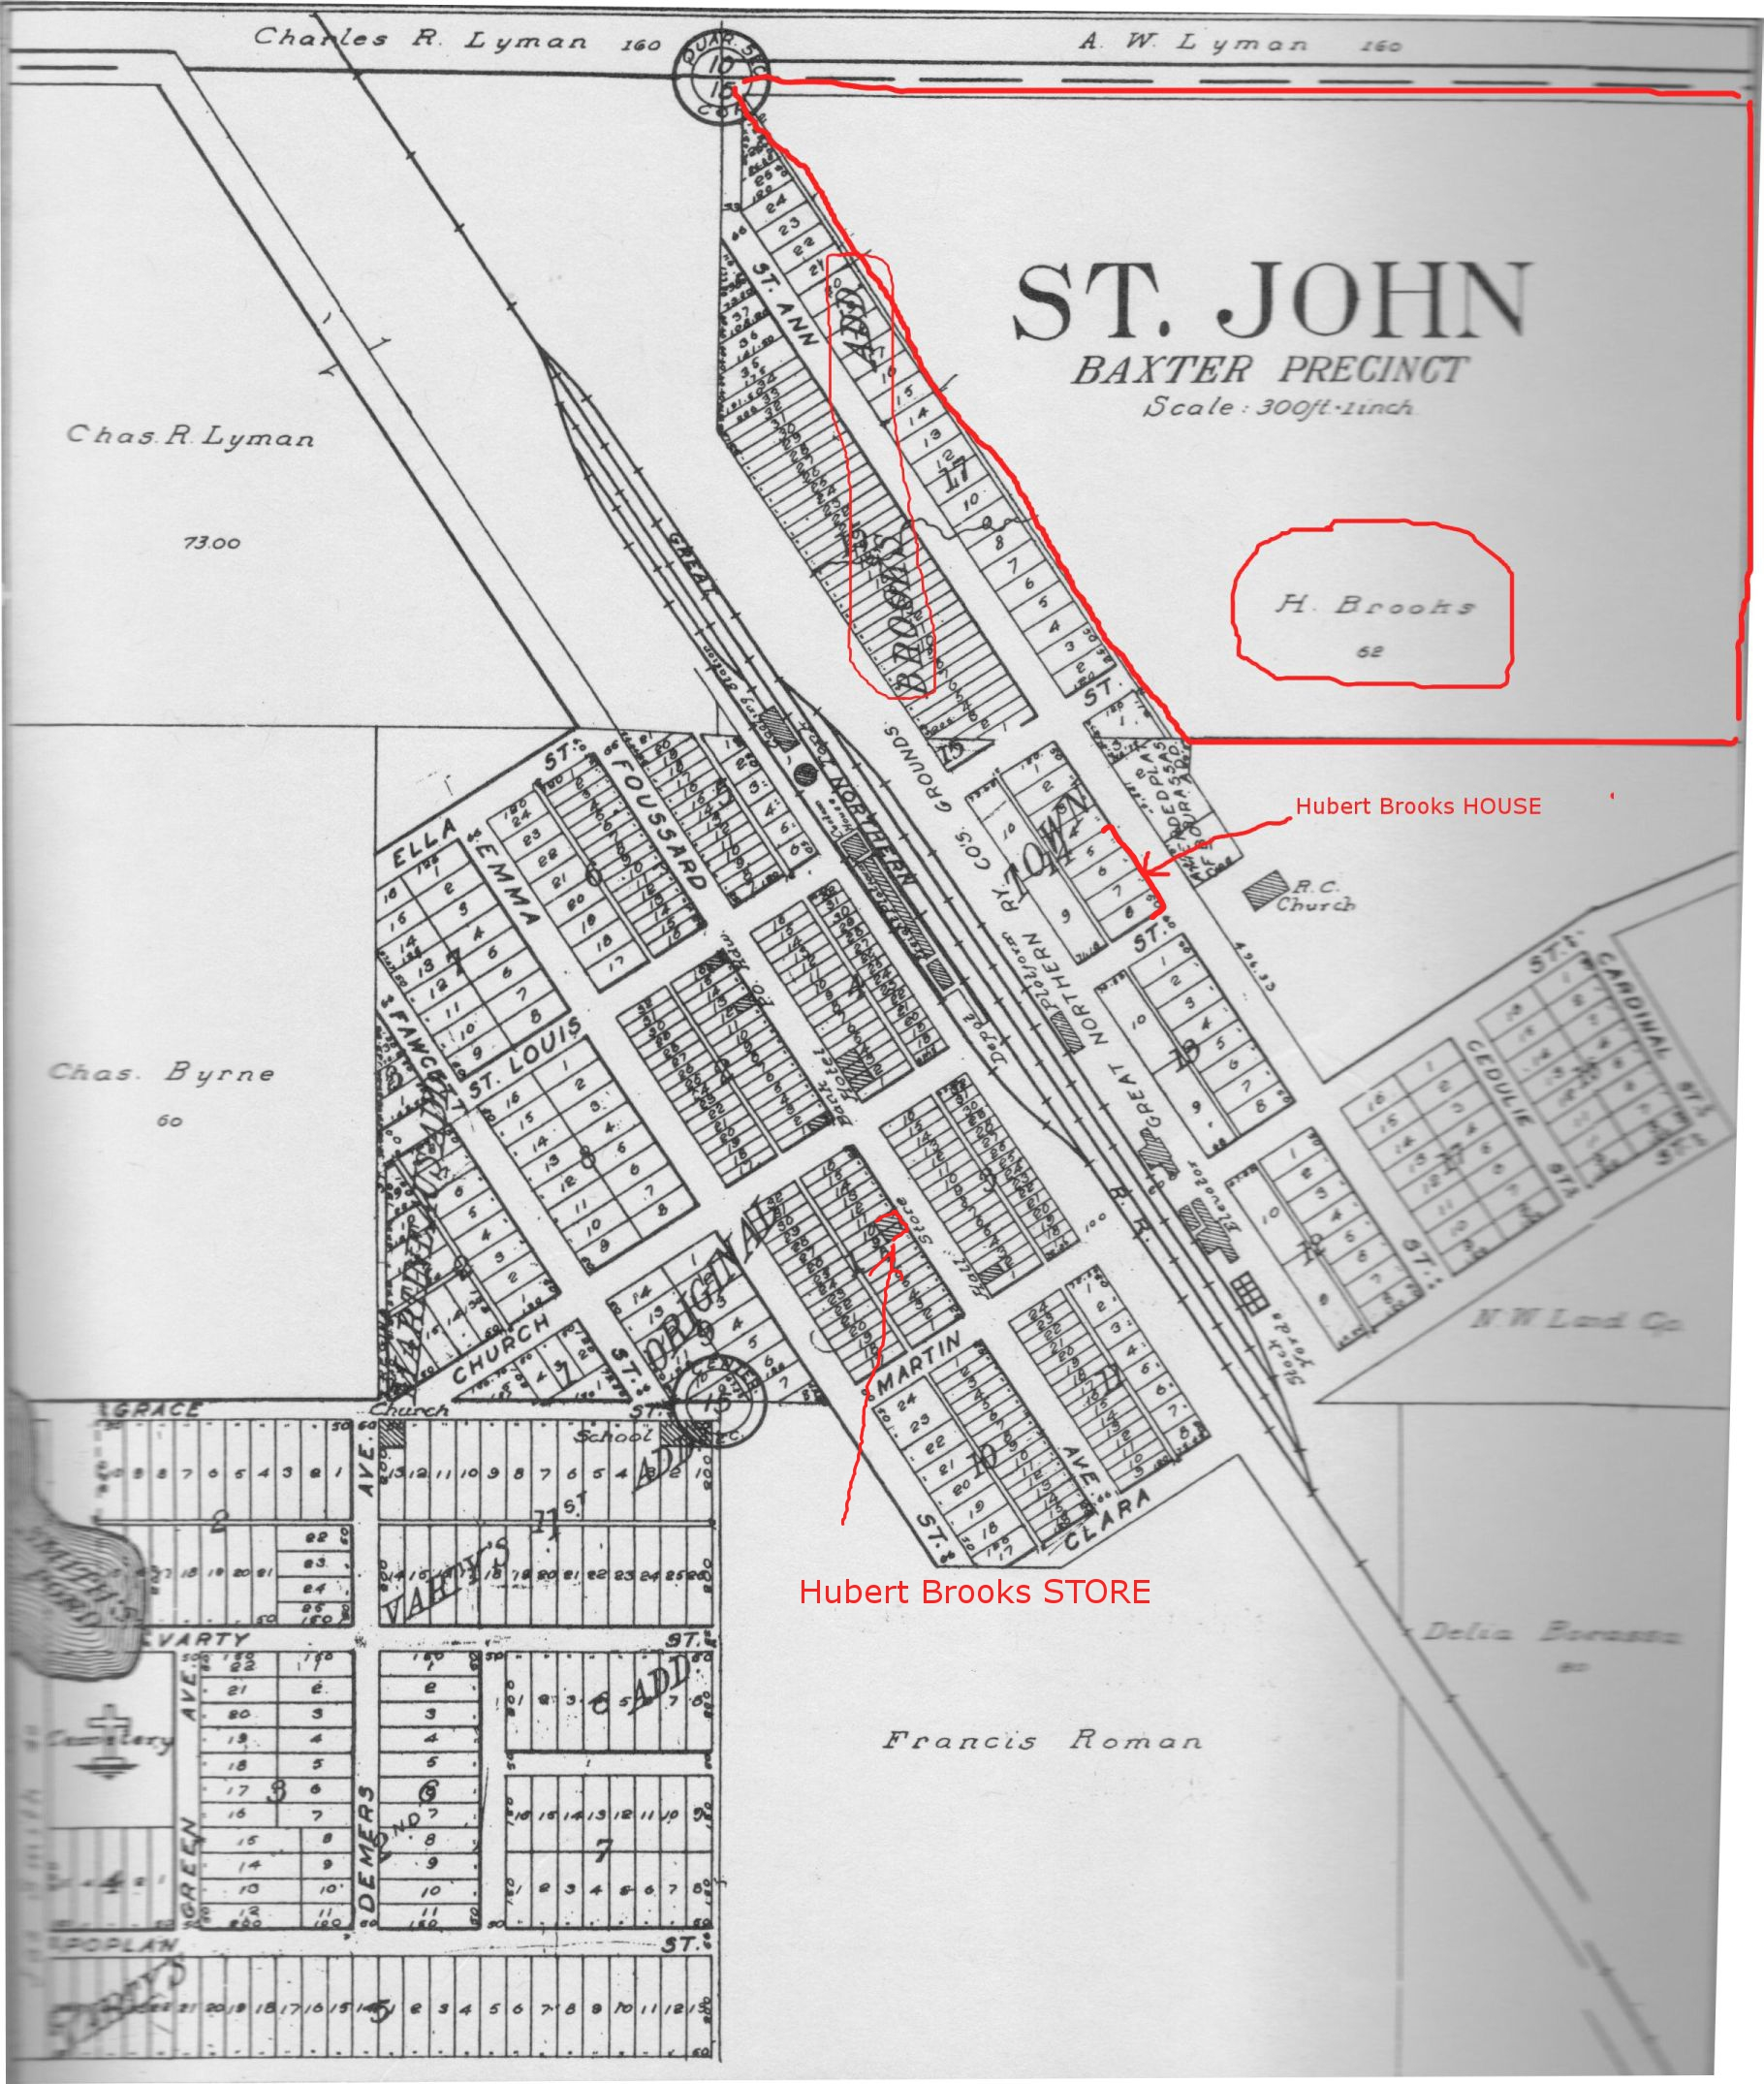 St. John Baxter Precinct Map